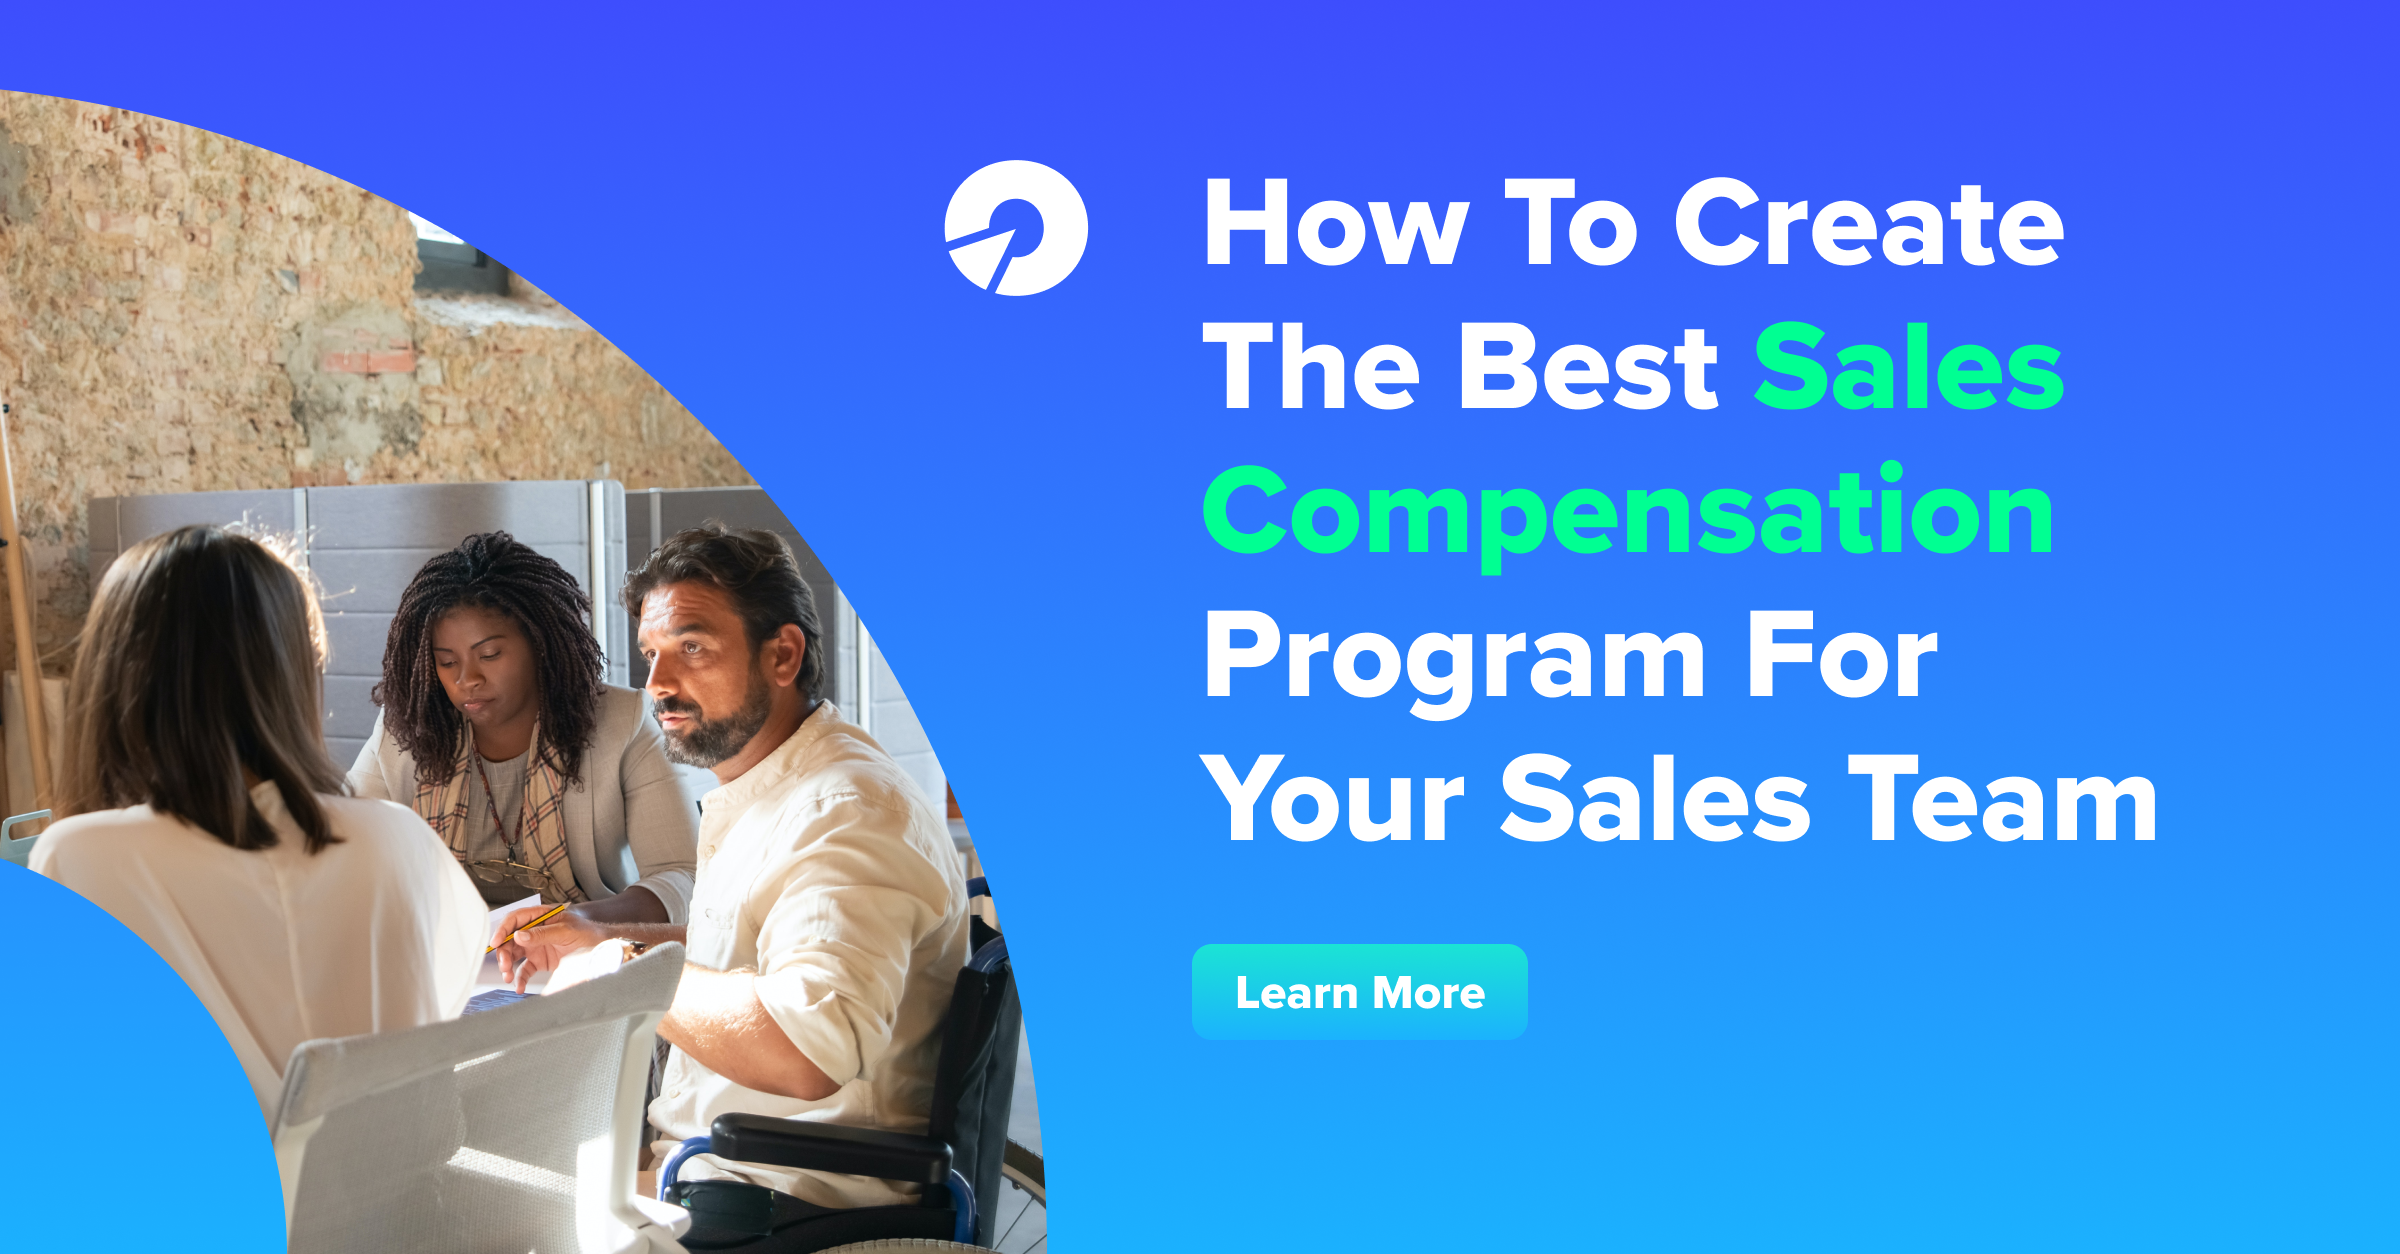 How To Create The Best Sales Compensation Program For Your Sales Team